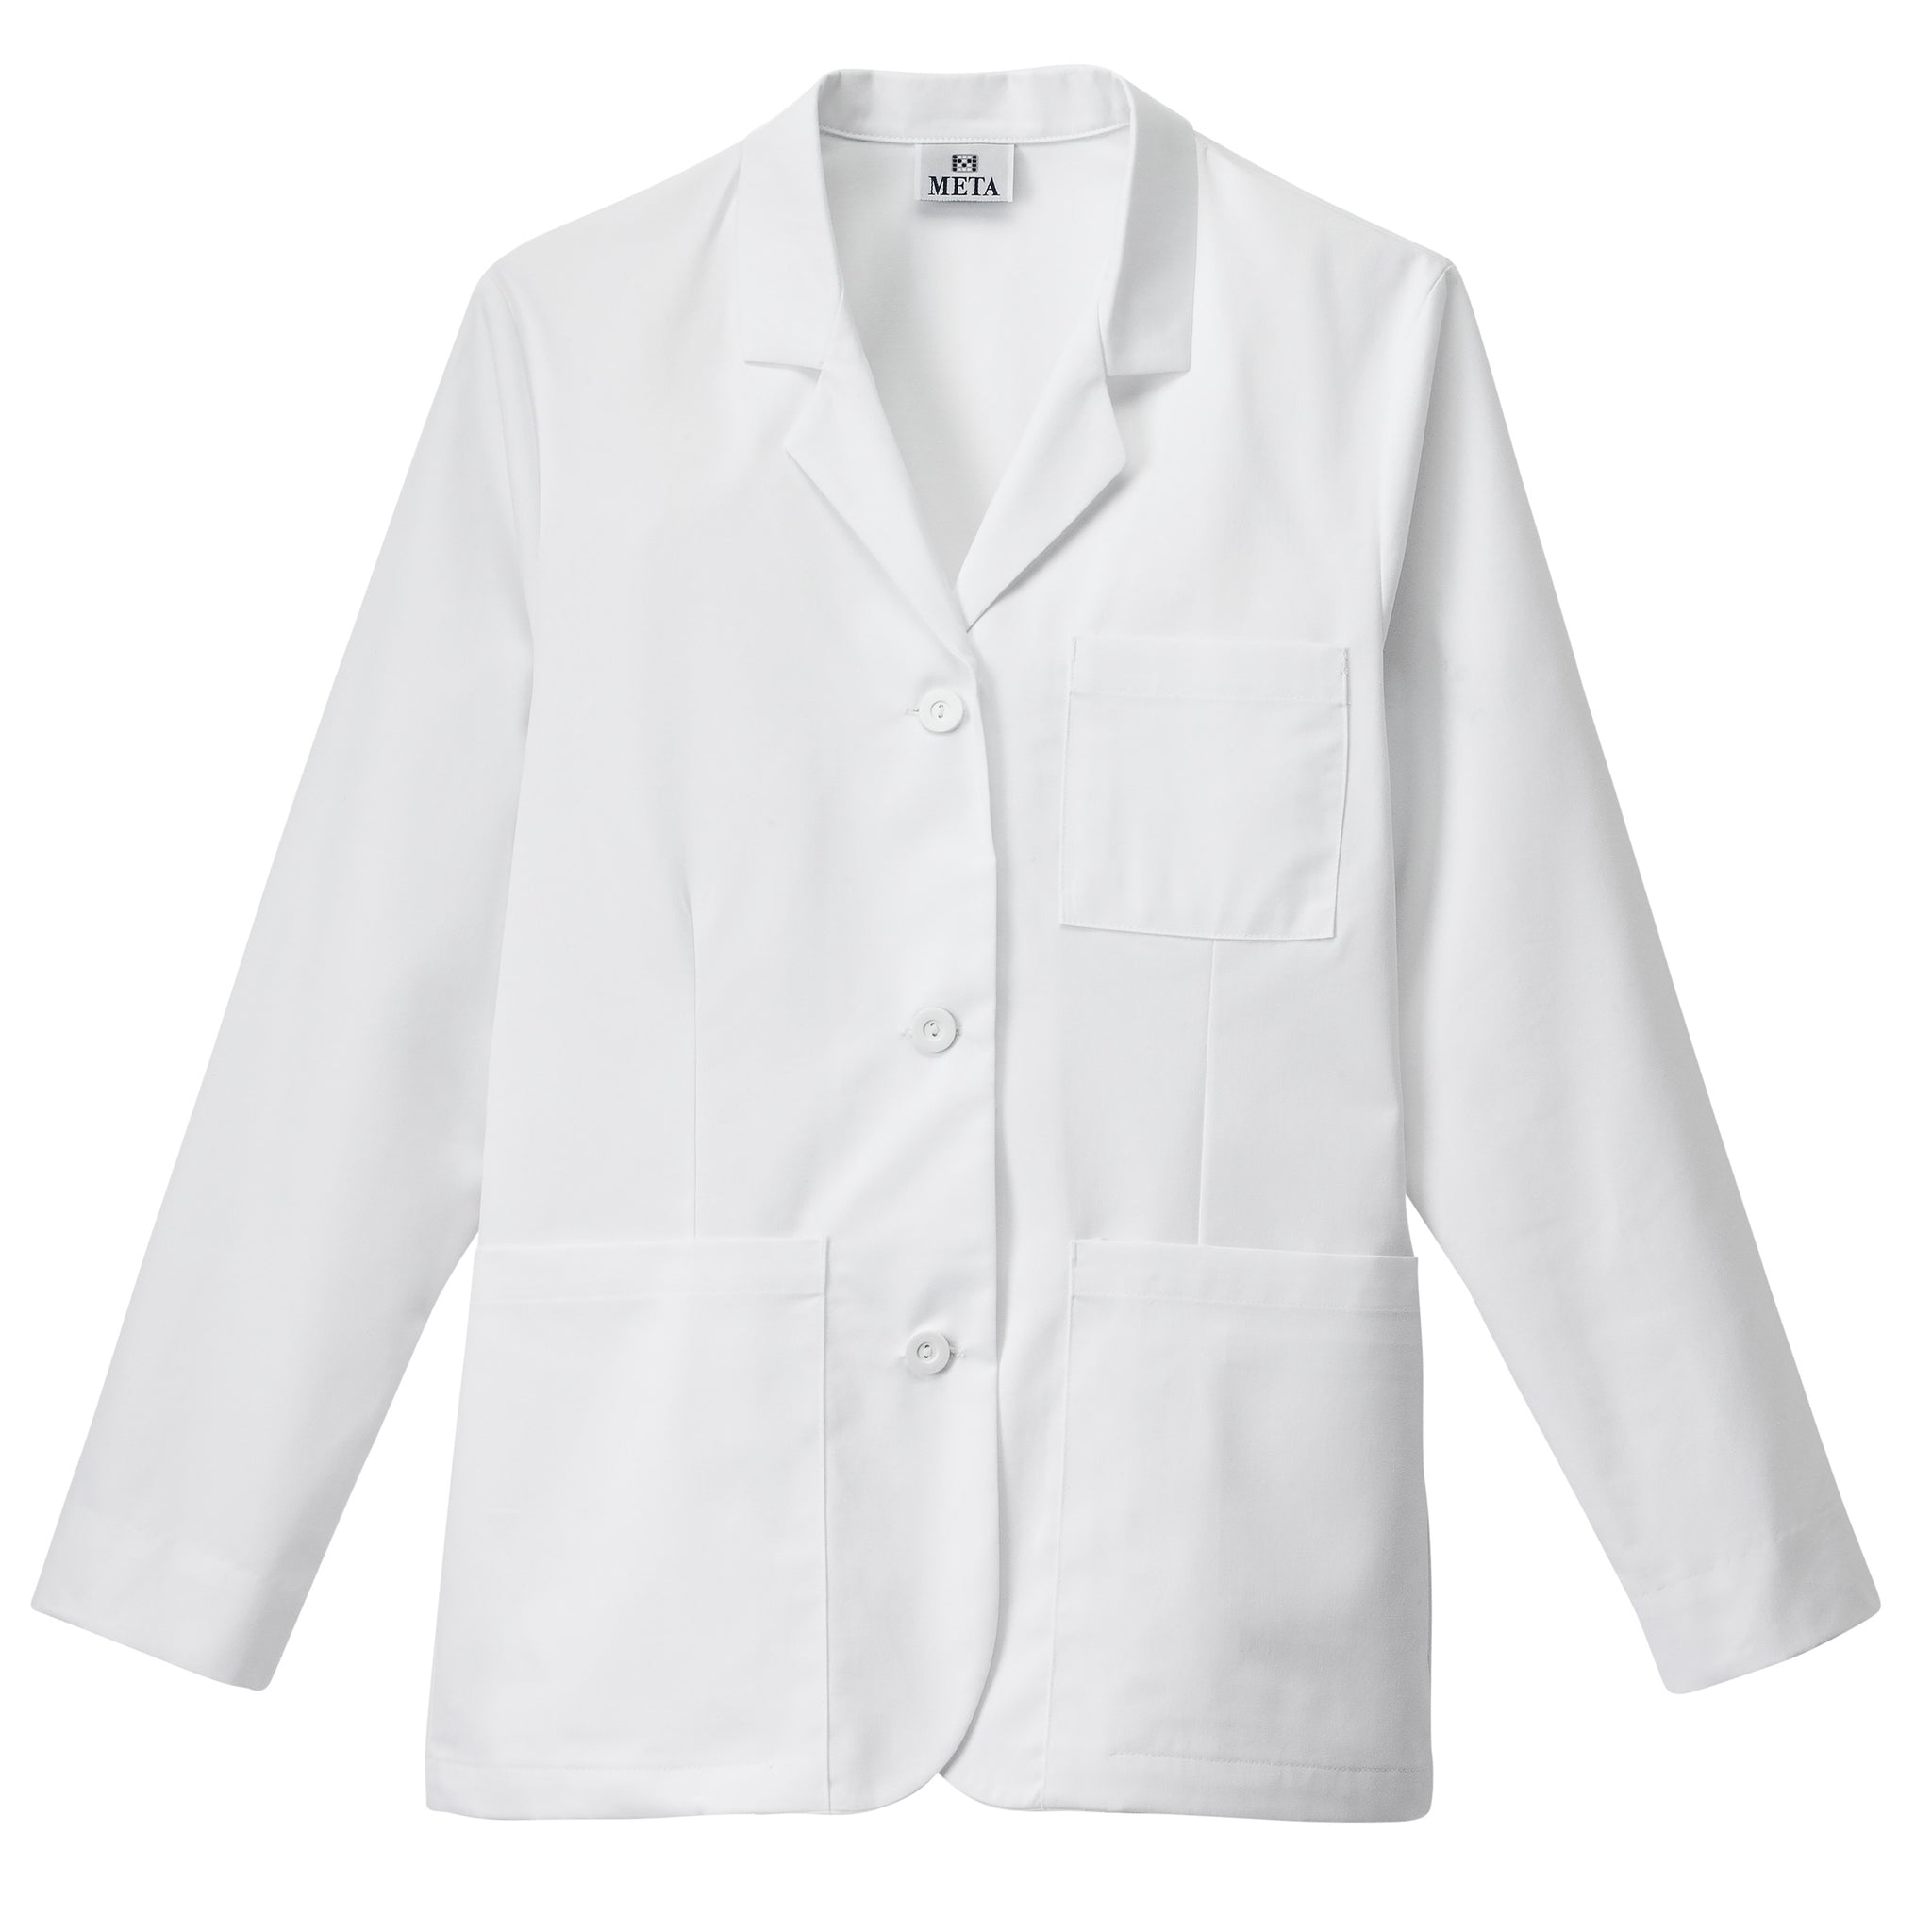 "Meta Women's iPad 28"" Pharmacy Coat 738"